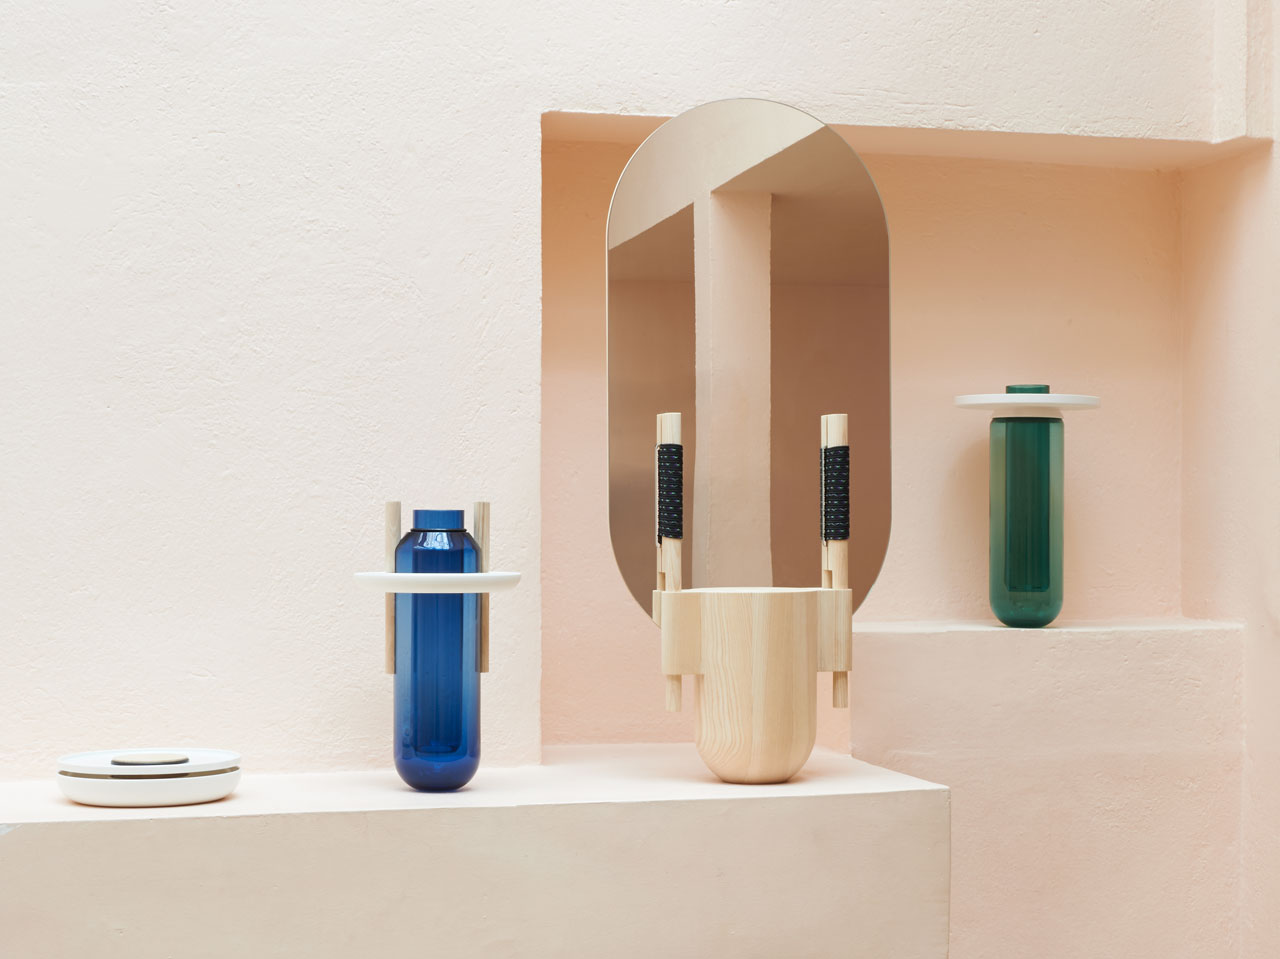 Vases Composés (produced by the Cirva and the Manufacture nationale de Sèvres) Standing Mirror (edited by Galerie kreo and produced by  Hubert Weinzierl workshop) and Boxes : Joint Creux (produced by the Manufacture nationale de Sèvres) by French designer Samy Rio.